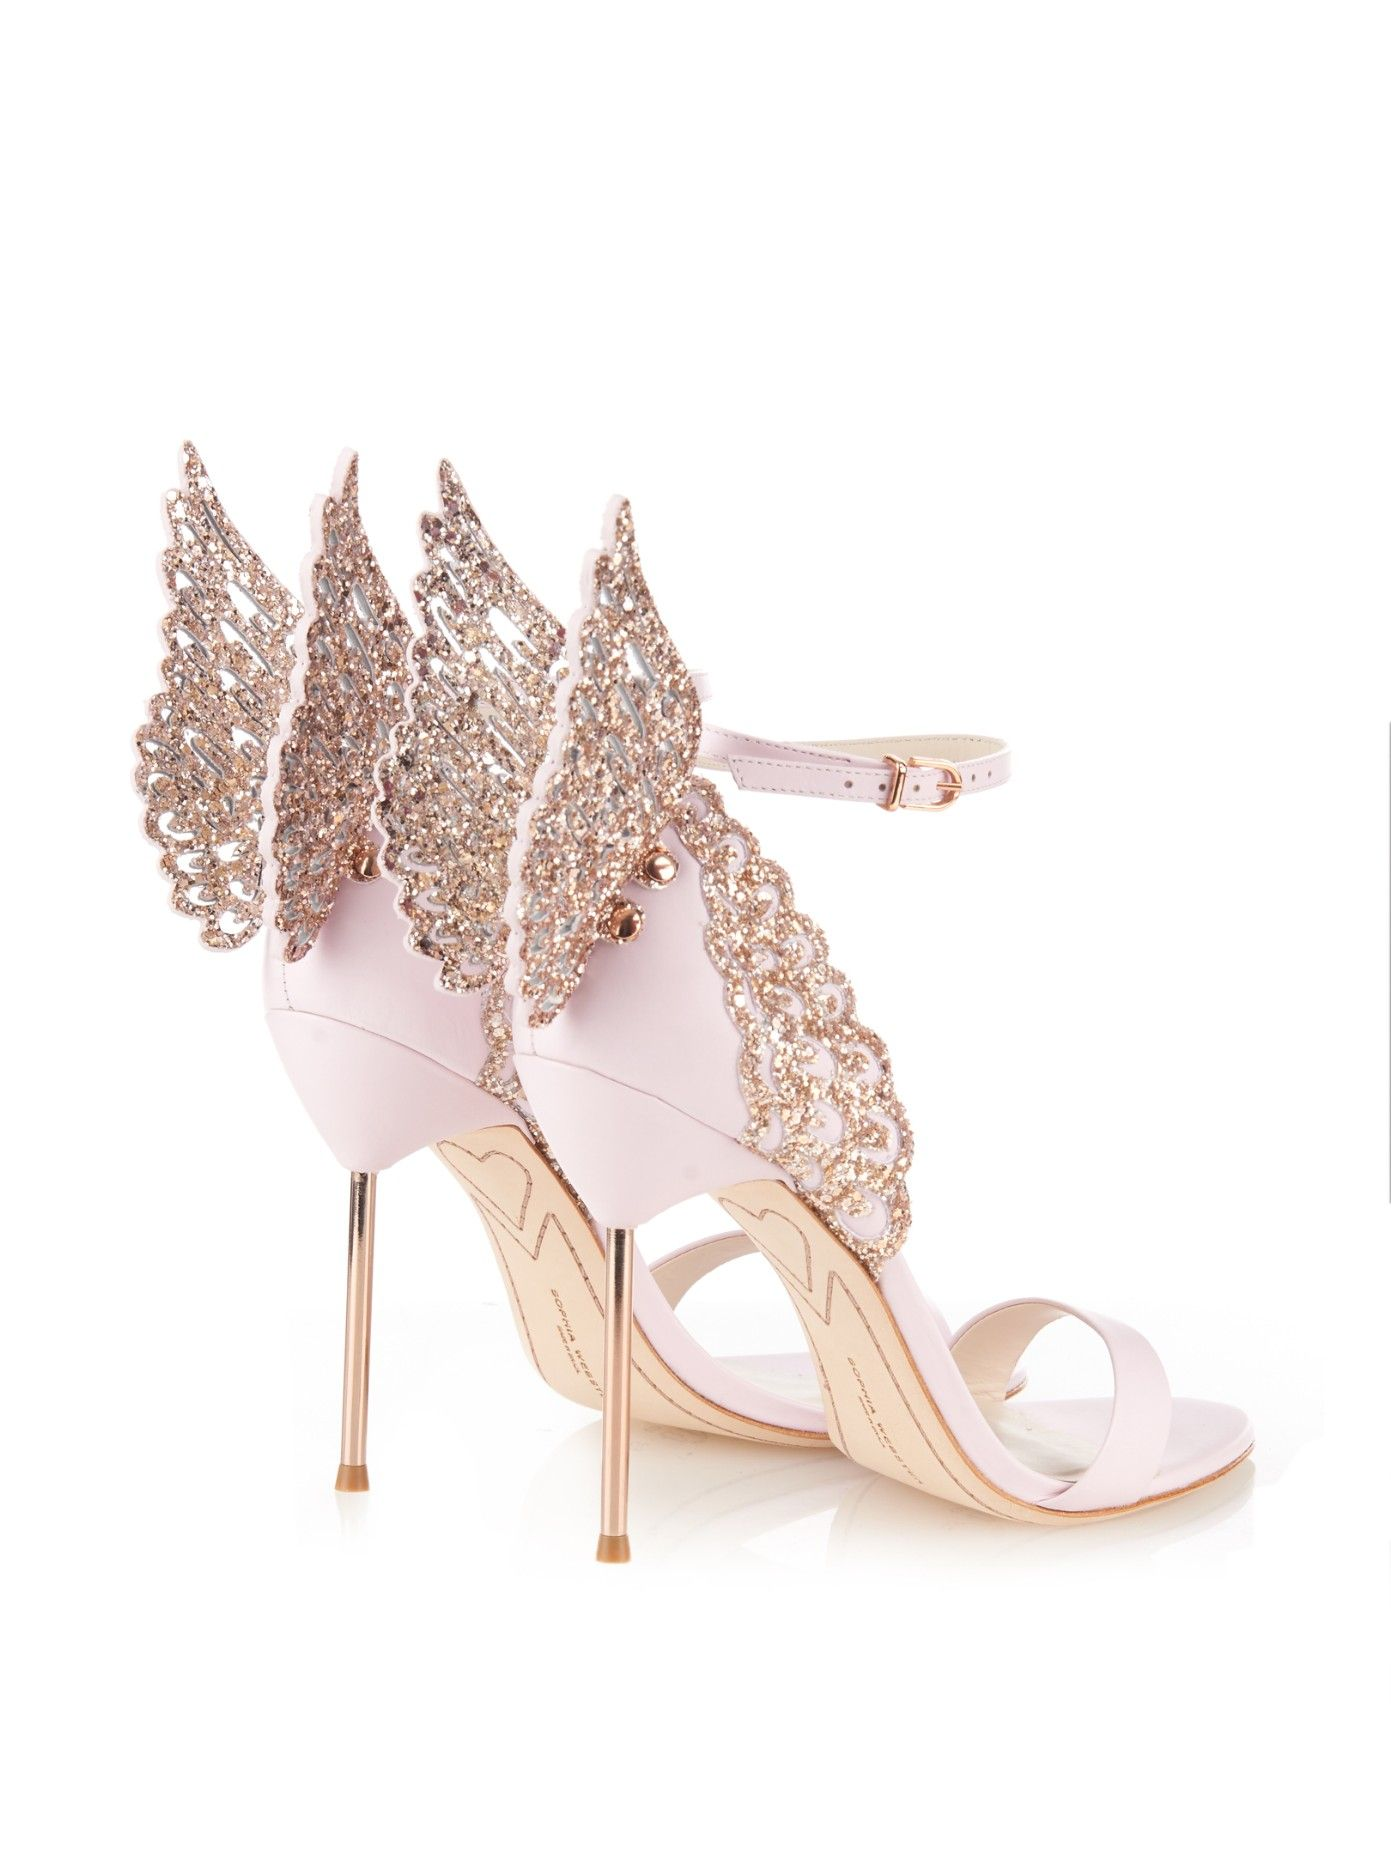 5ede3f0b4 SOPHIA WEBSTER Evangeline glitter angel-wing sandals | Divalicious ...